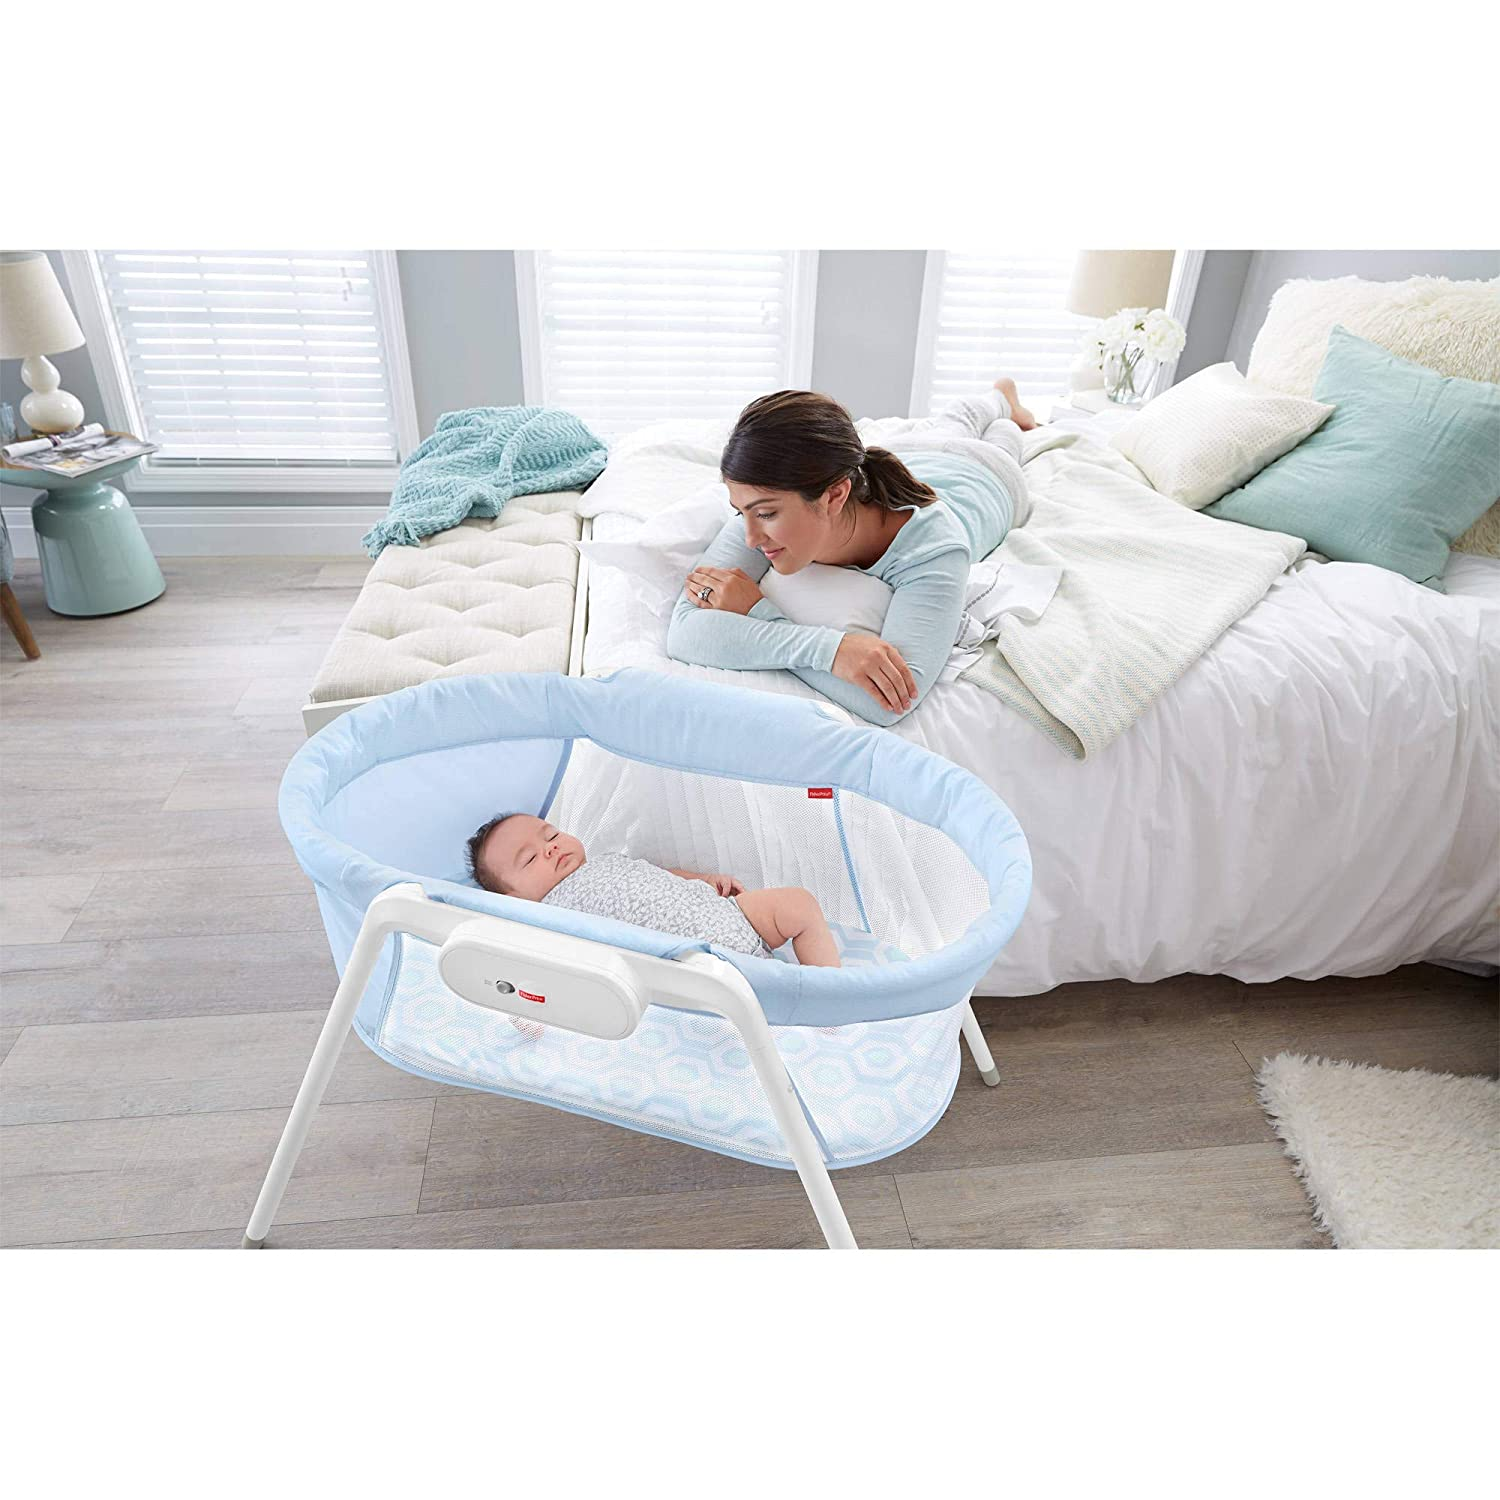 Fisher-Price Stow 'N Go Bassinet - Easy to Assemble, Calming Vibrations For At Home Or On The Go DXY20